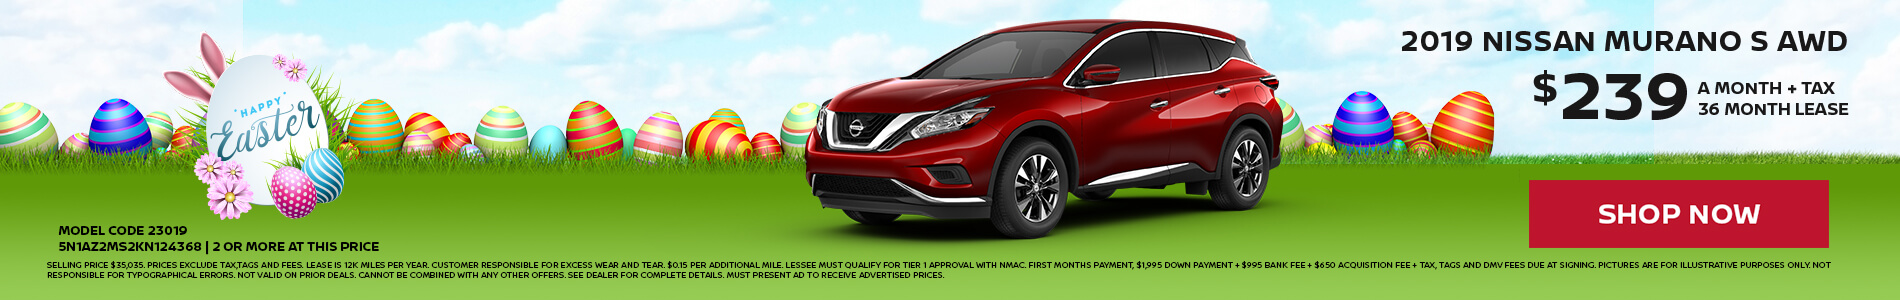 Nissan Murano $239 Lease